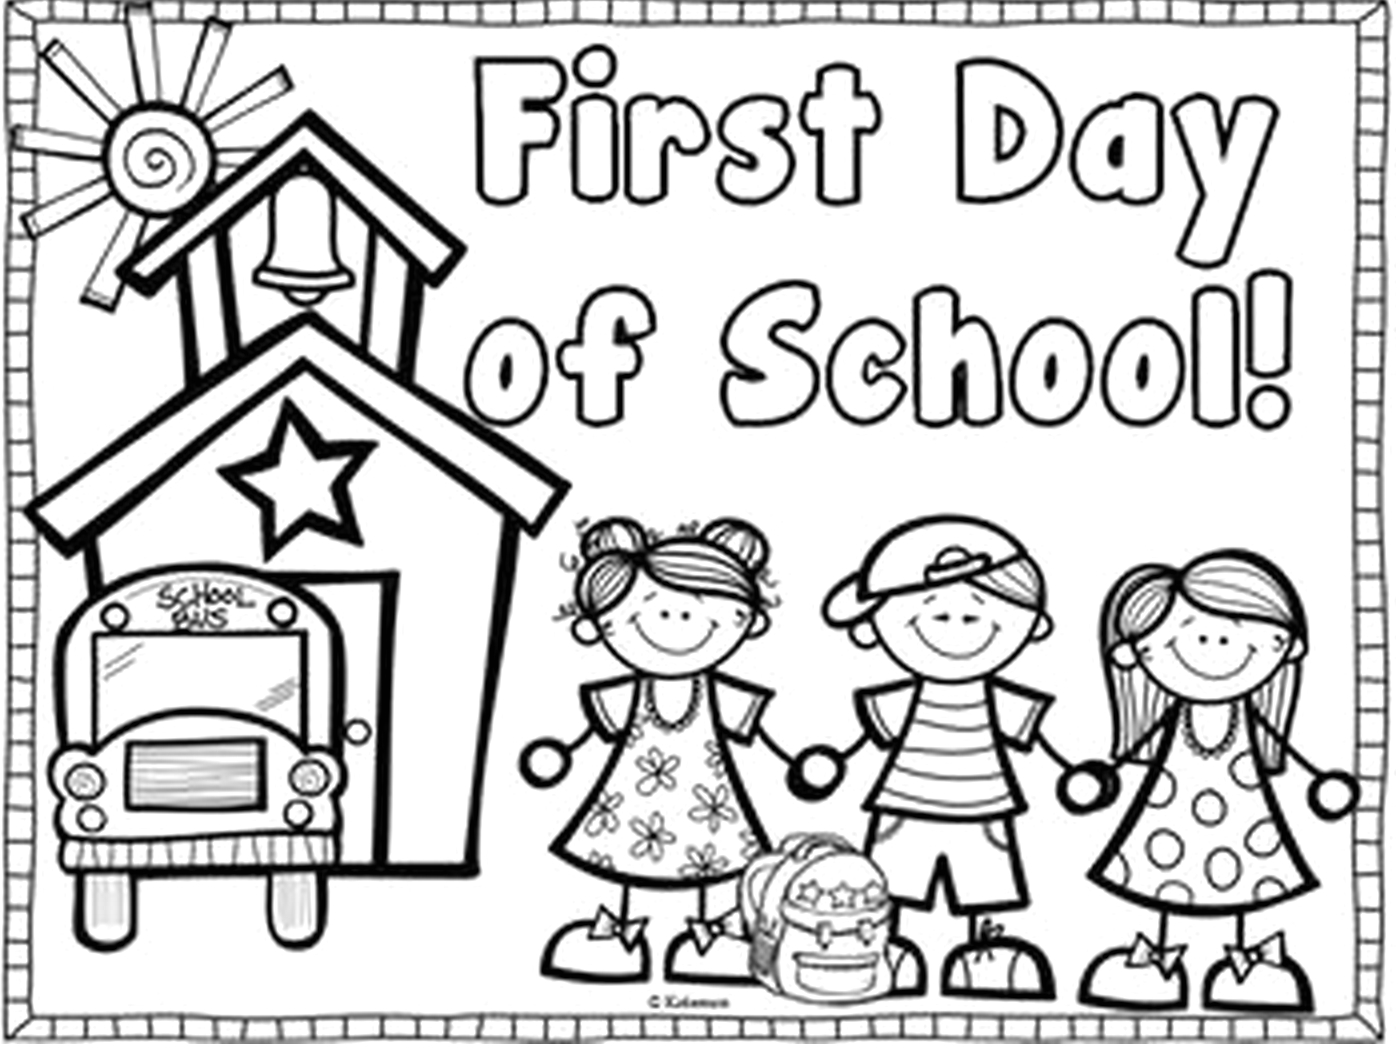 First Day Of School Coloring Pages for First Grade Printable First Day Of School Coloring Page